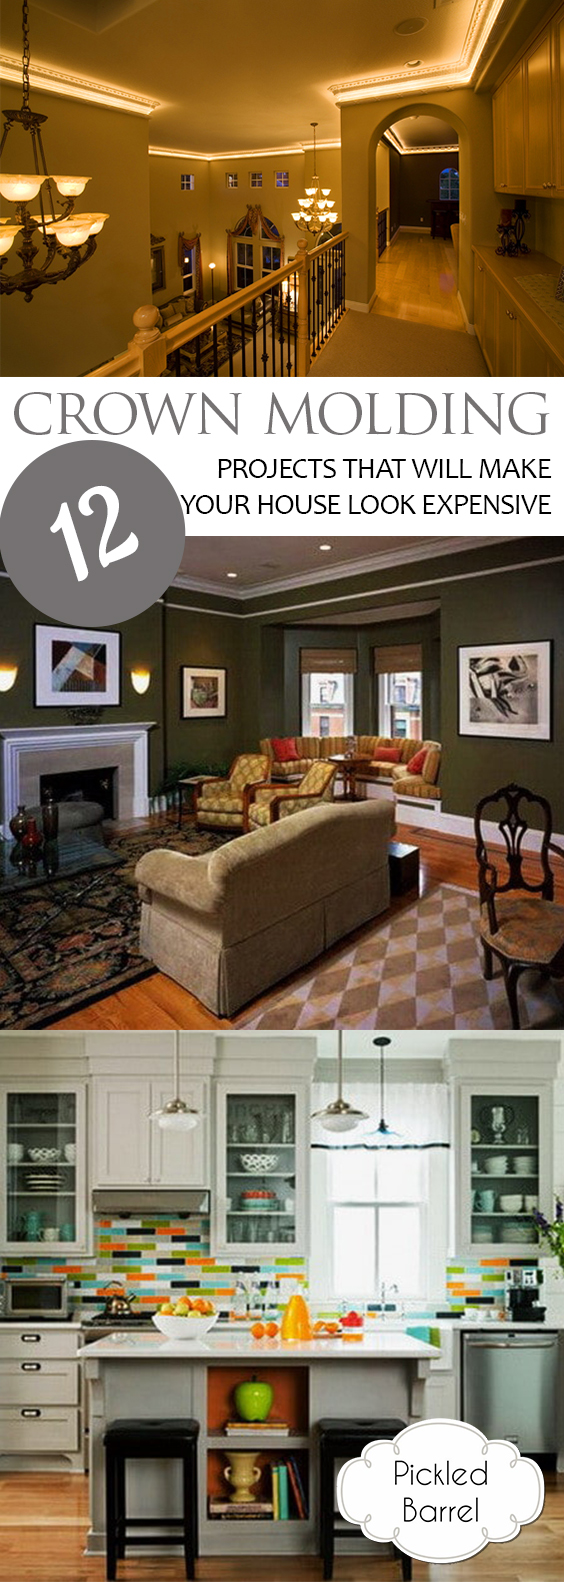 12 Crown Molding Projects That Will Make Your House Look Expensive| Crown Molding, Crow Molding Projects, DIY Crown Molding, Home Projects, Home Improvement Projects, DIY Home Hacks, Popular Pin